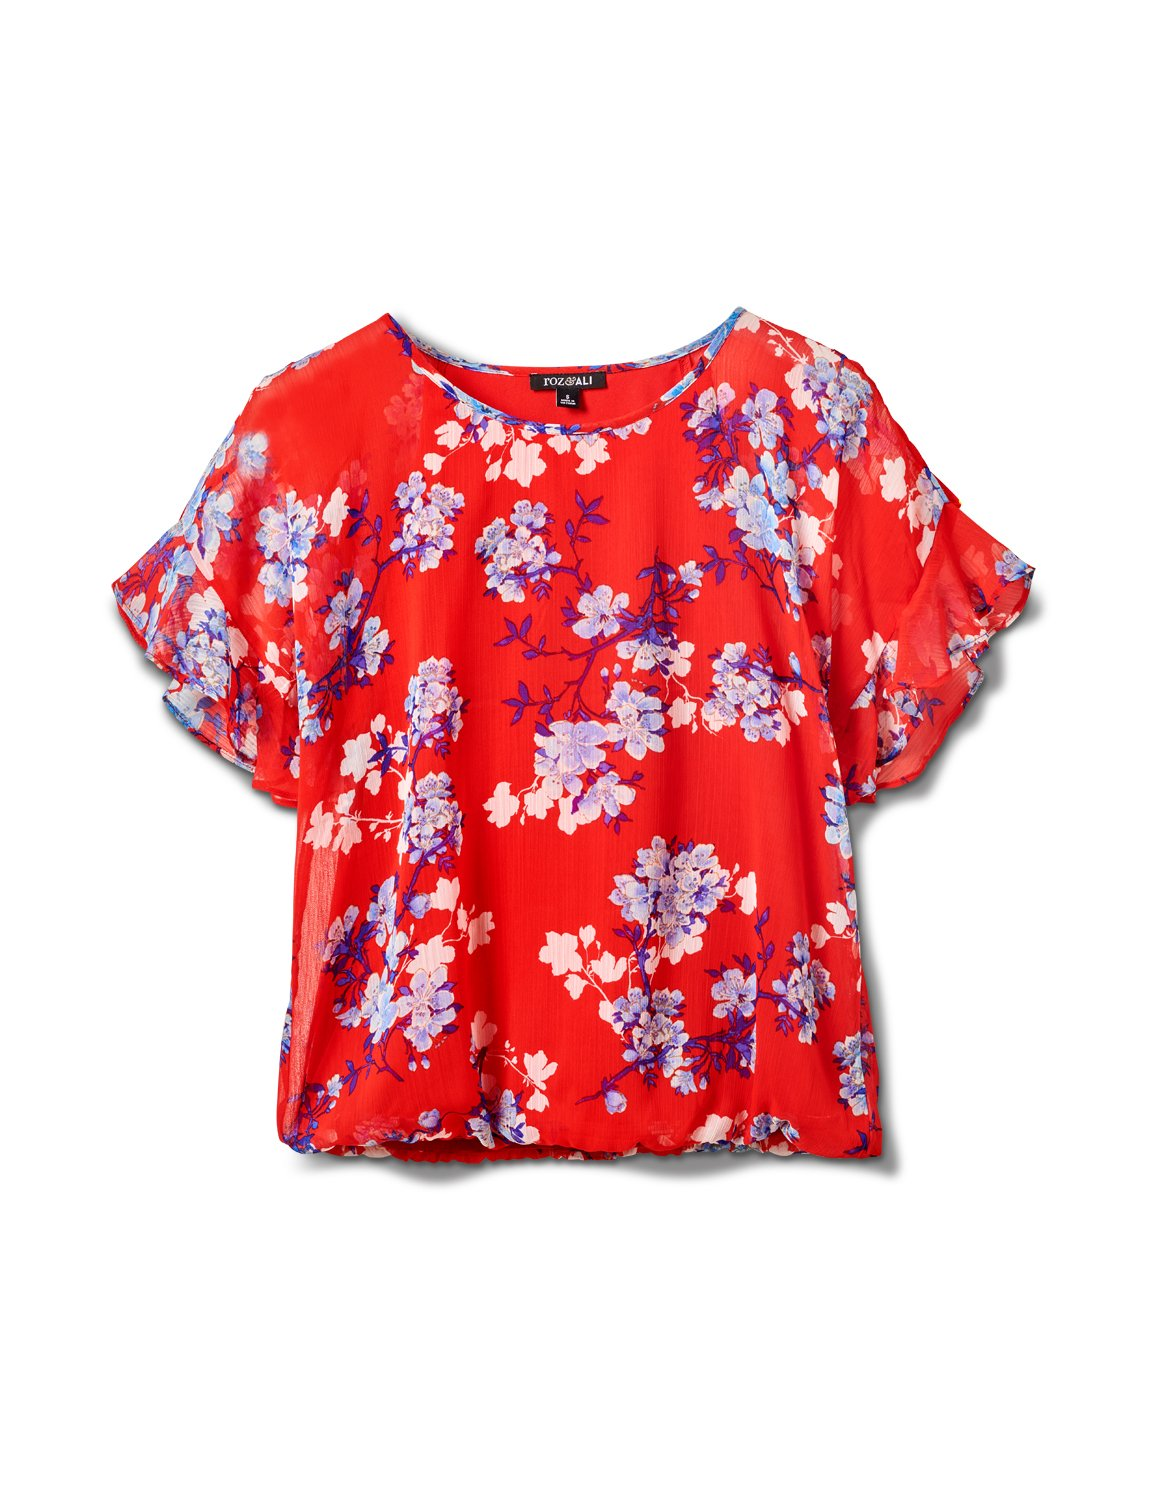 Floral Cold Shoulder Bubble Hem Top - Misses -Red - Front